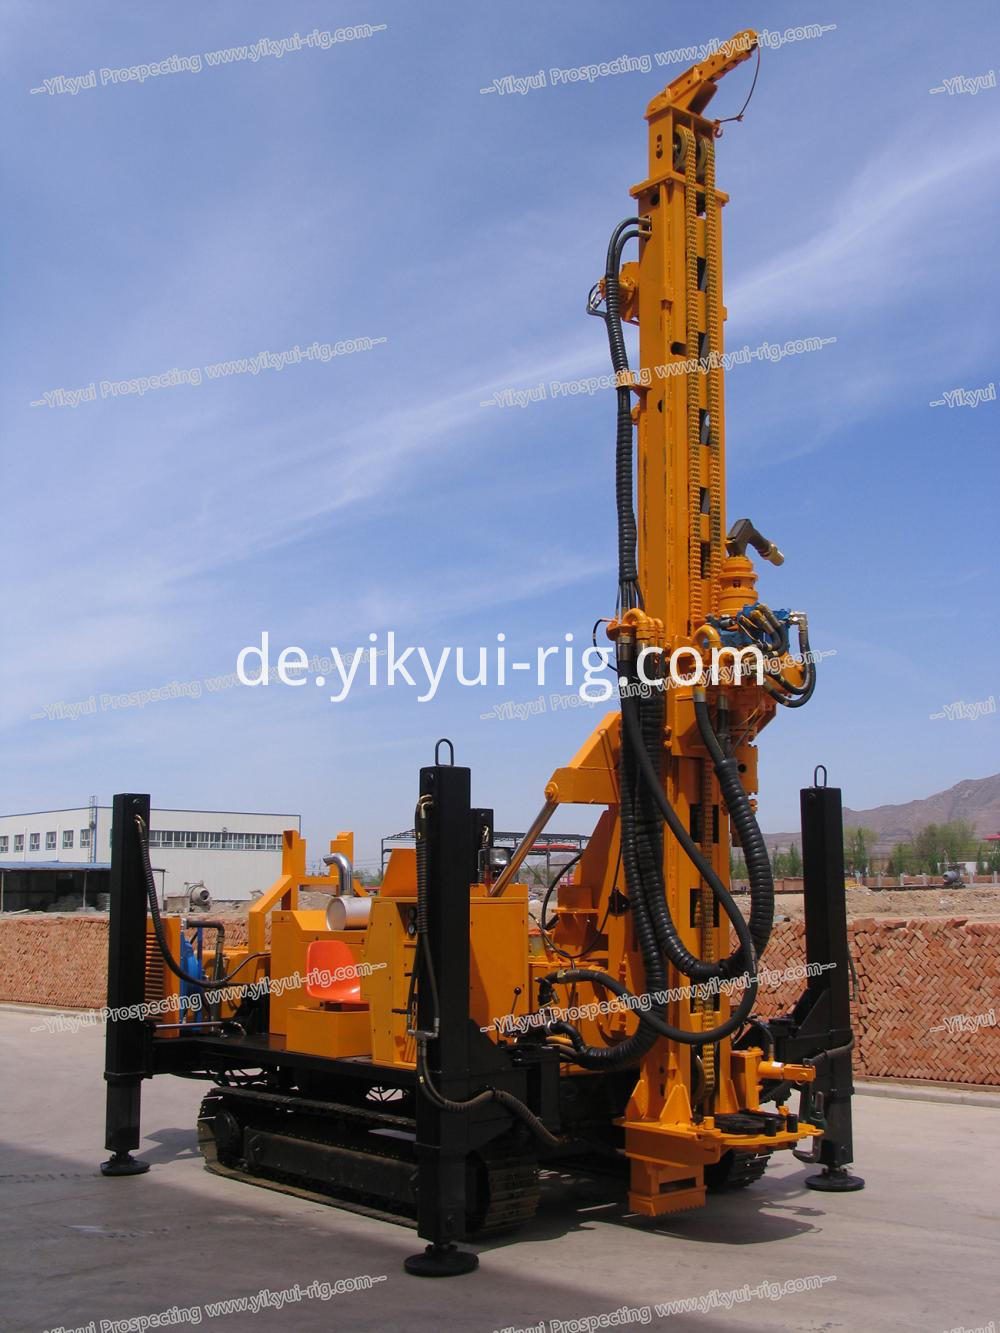 Ykrc 500a 235m Reverse Circulation Rc Dth Drilling Rig 11 Jpg